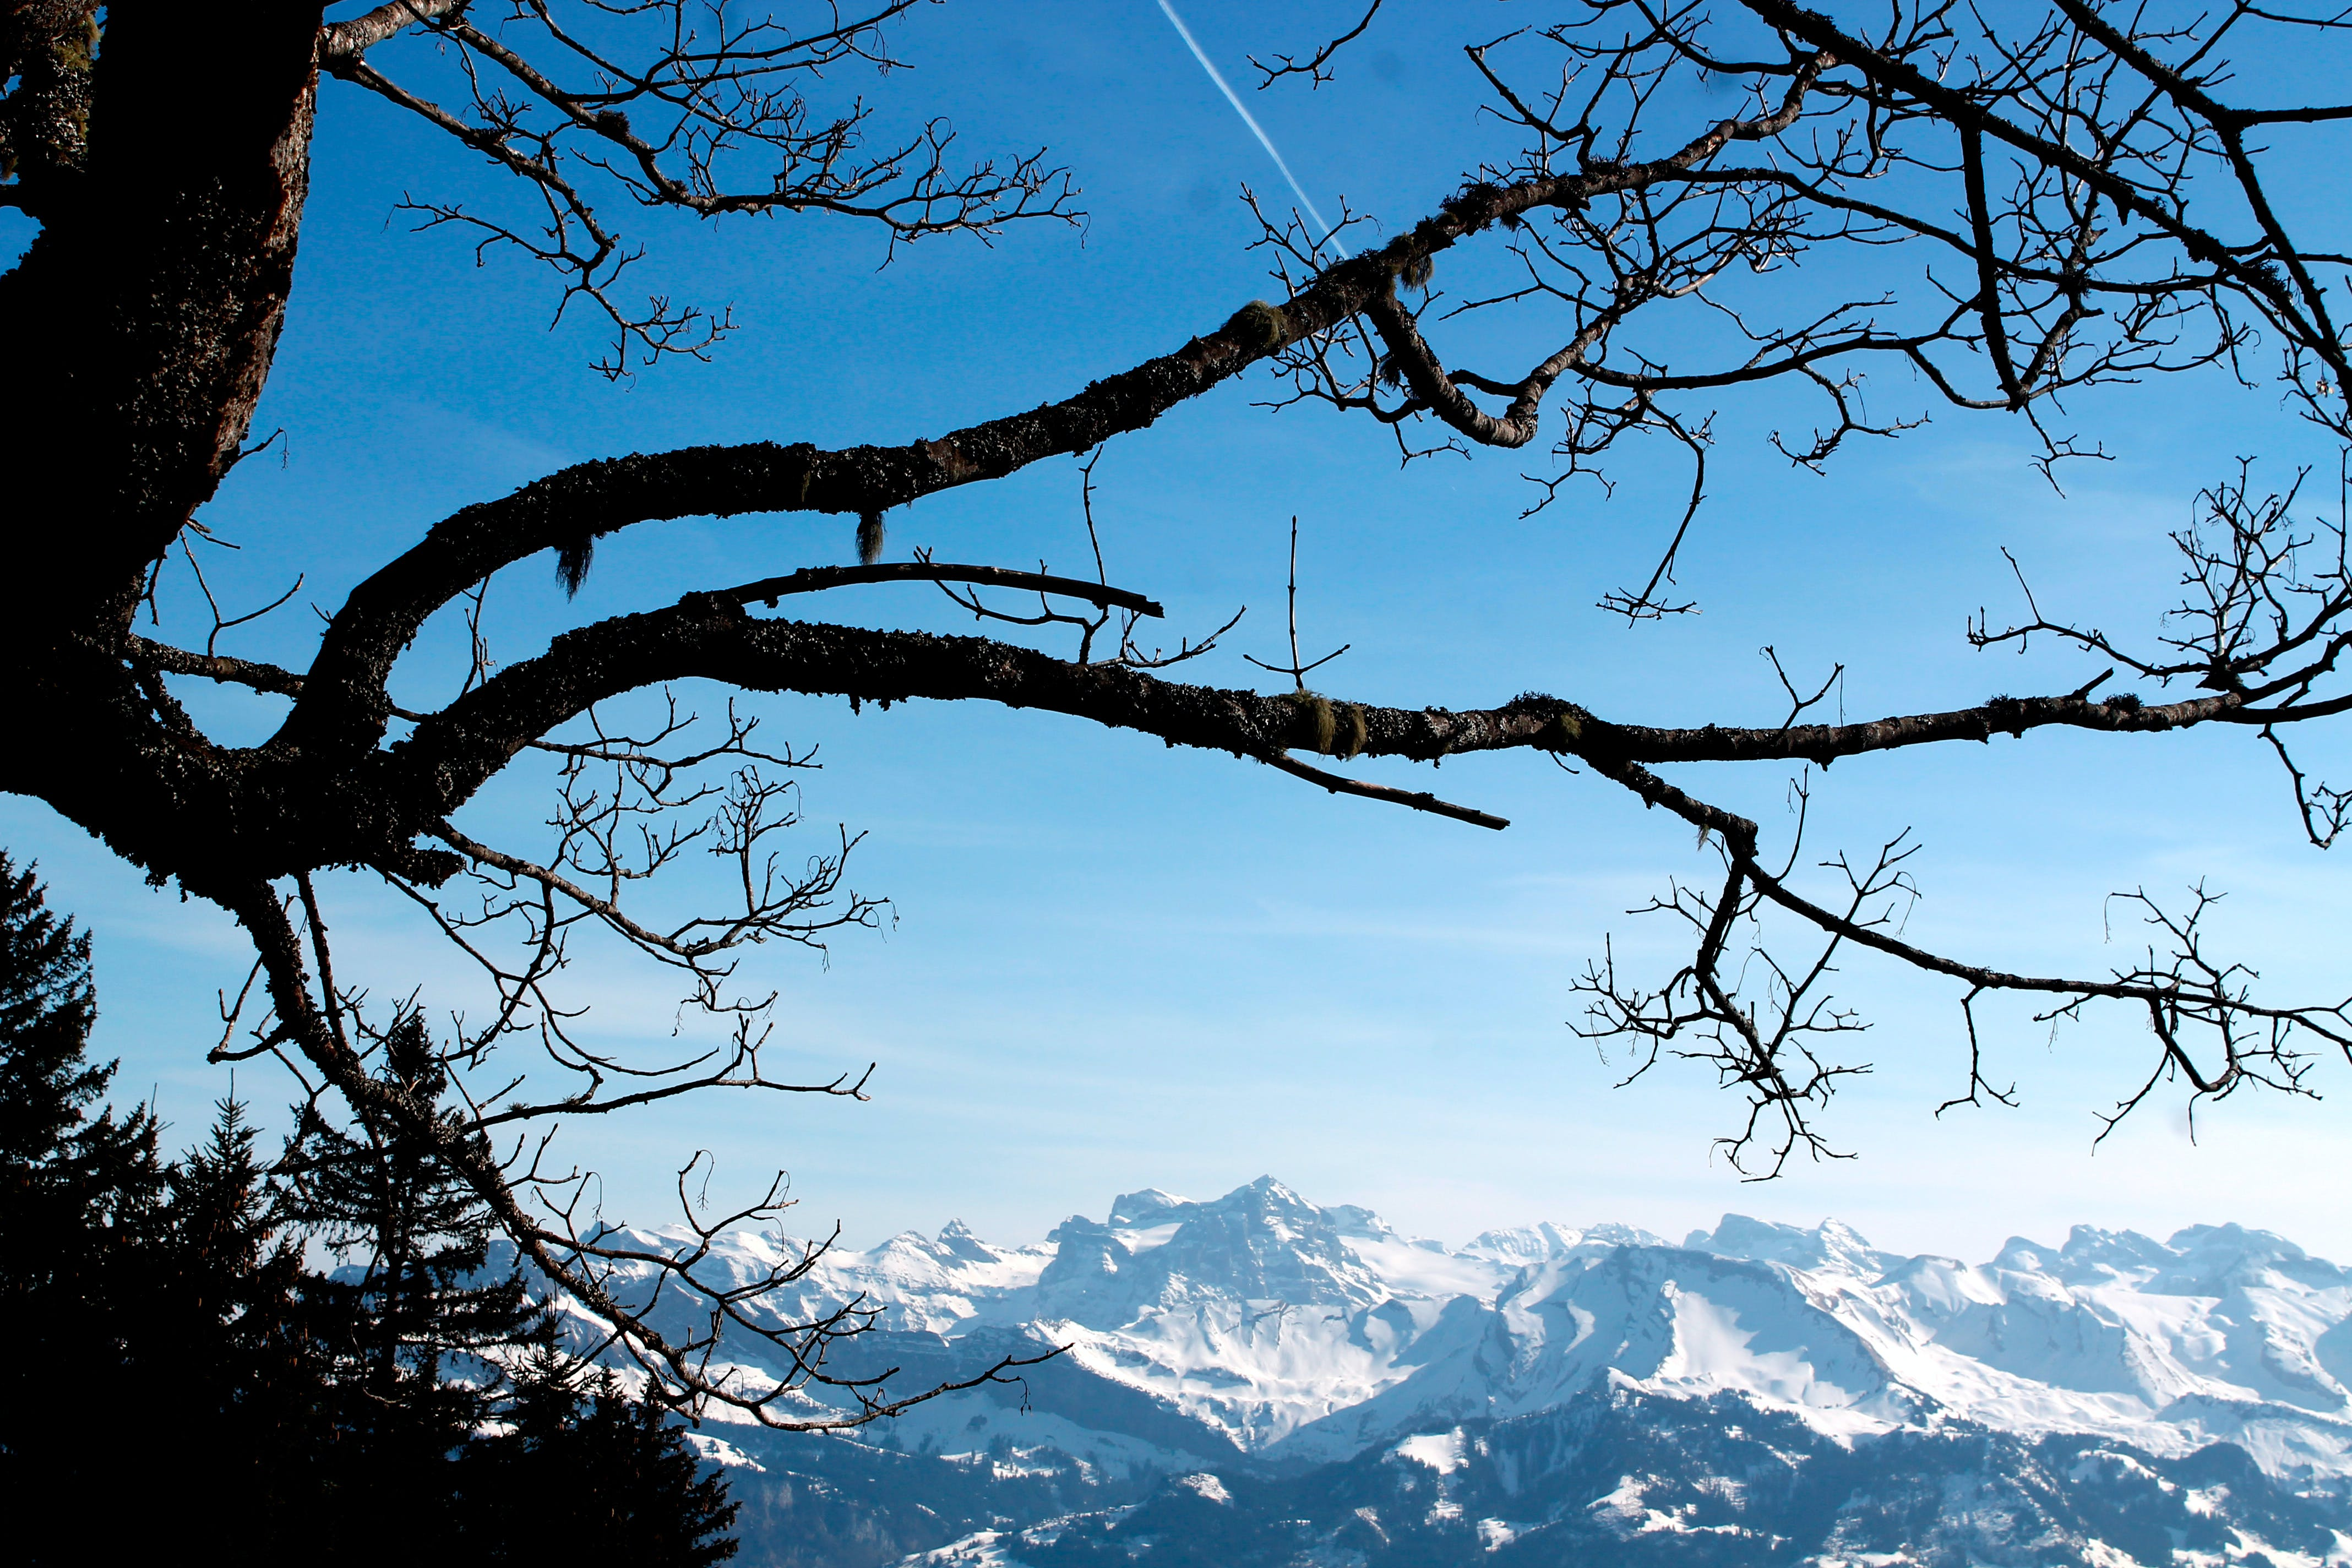 Free stock photo of blue sky, branches, mountain, snow capped mountains